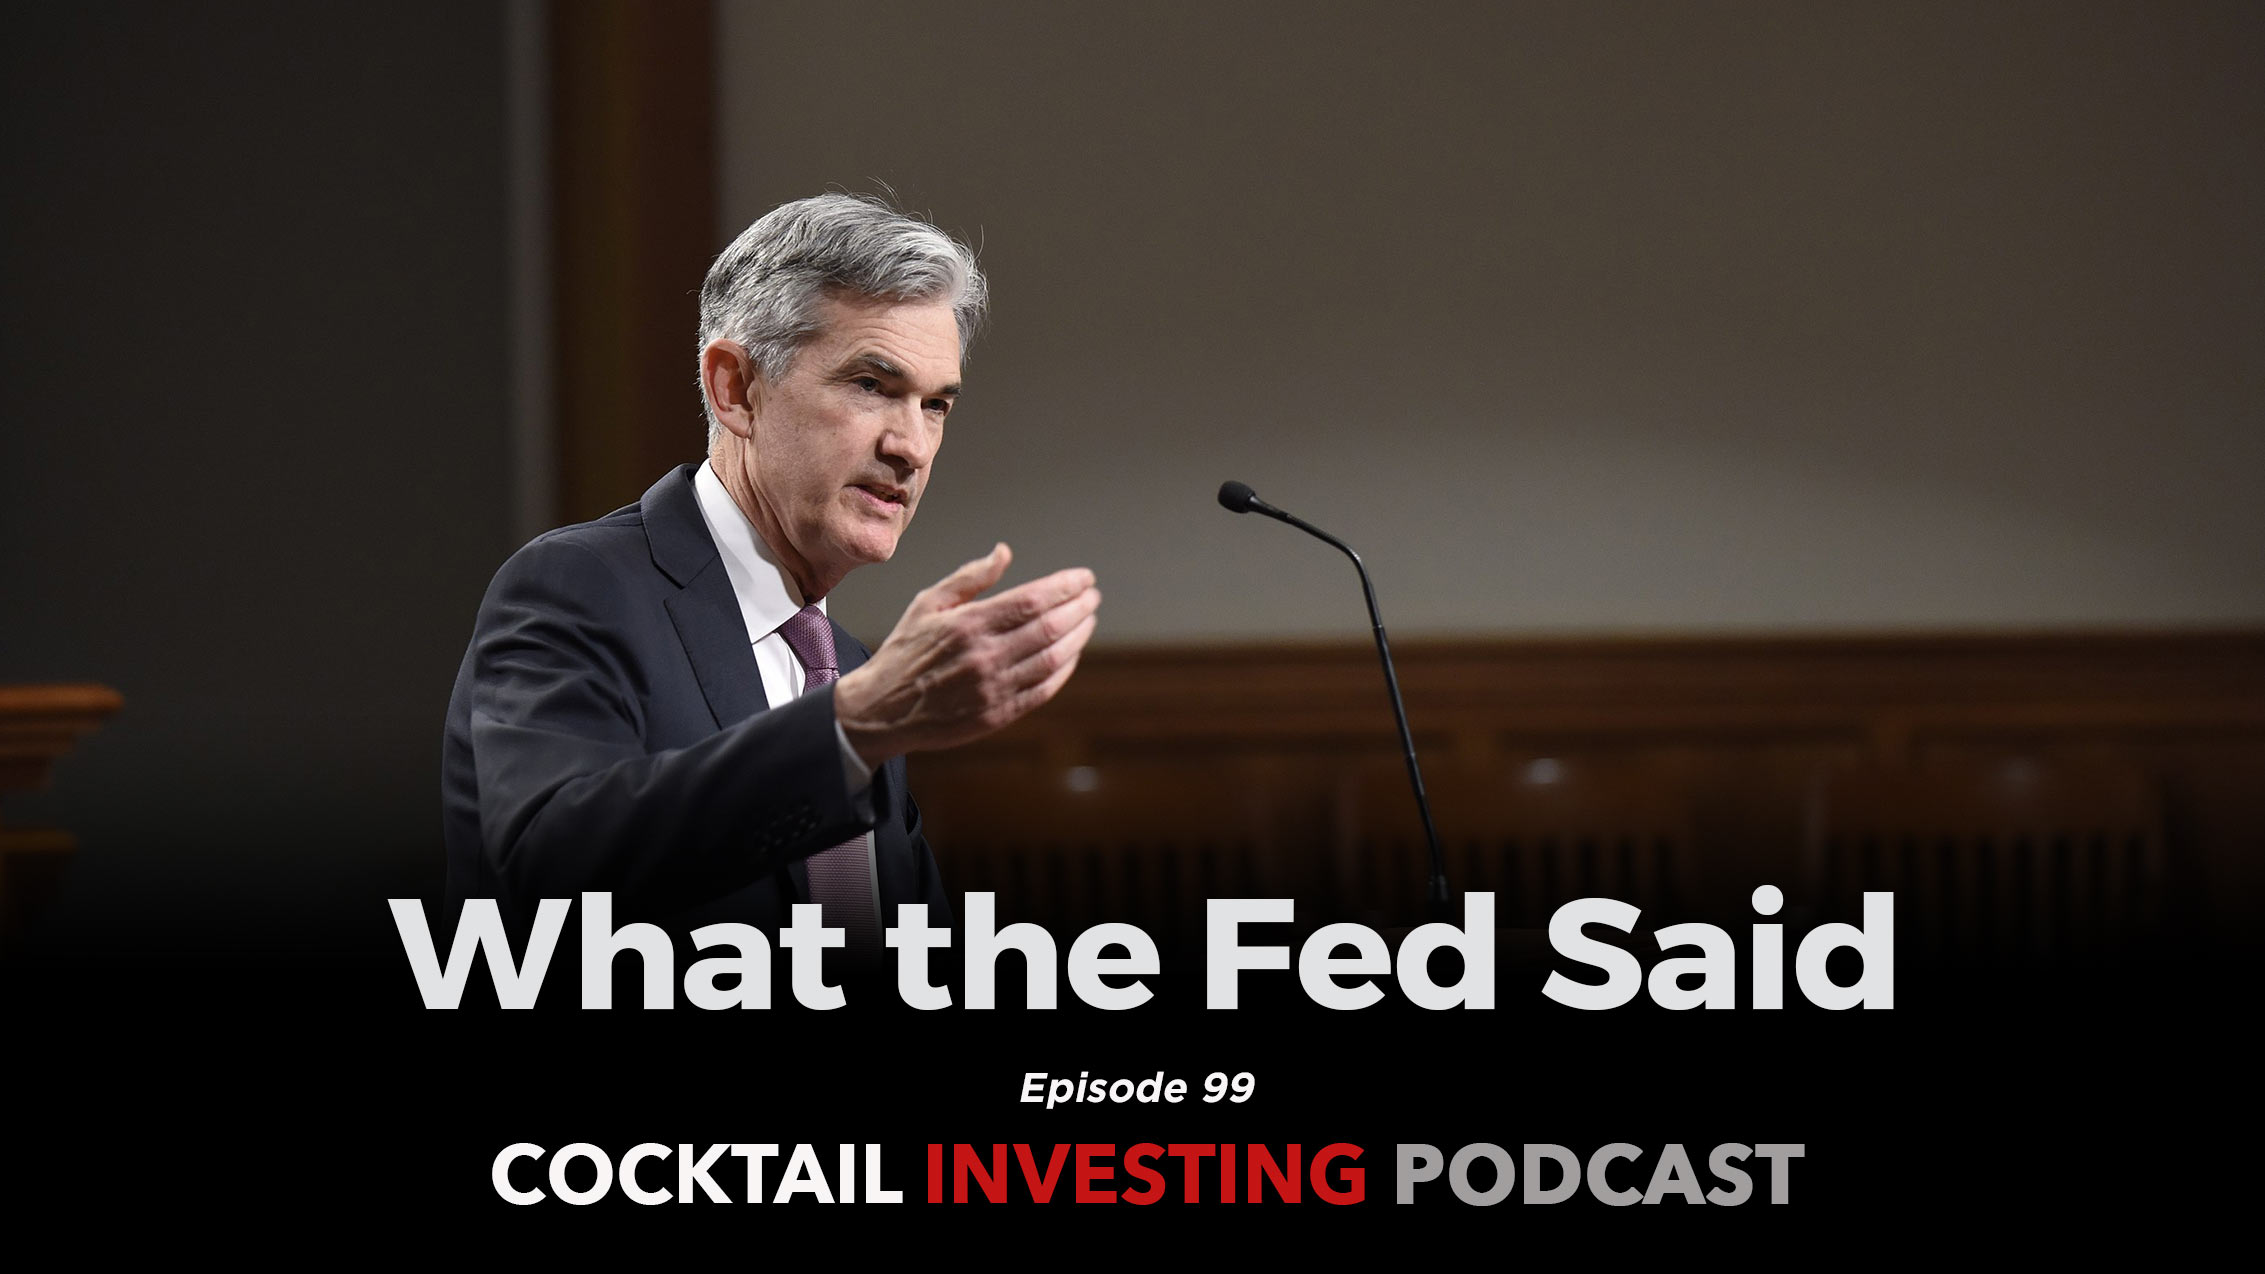 What the Fed said, and why it spooked the markets